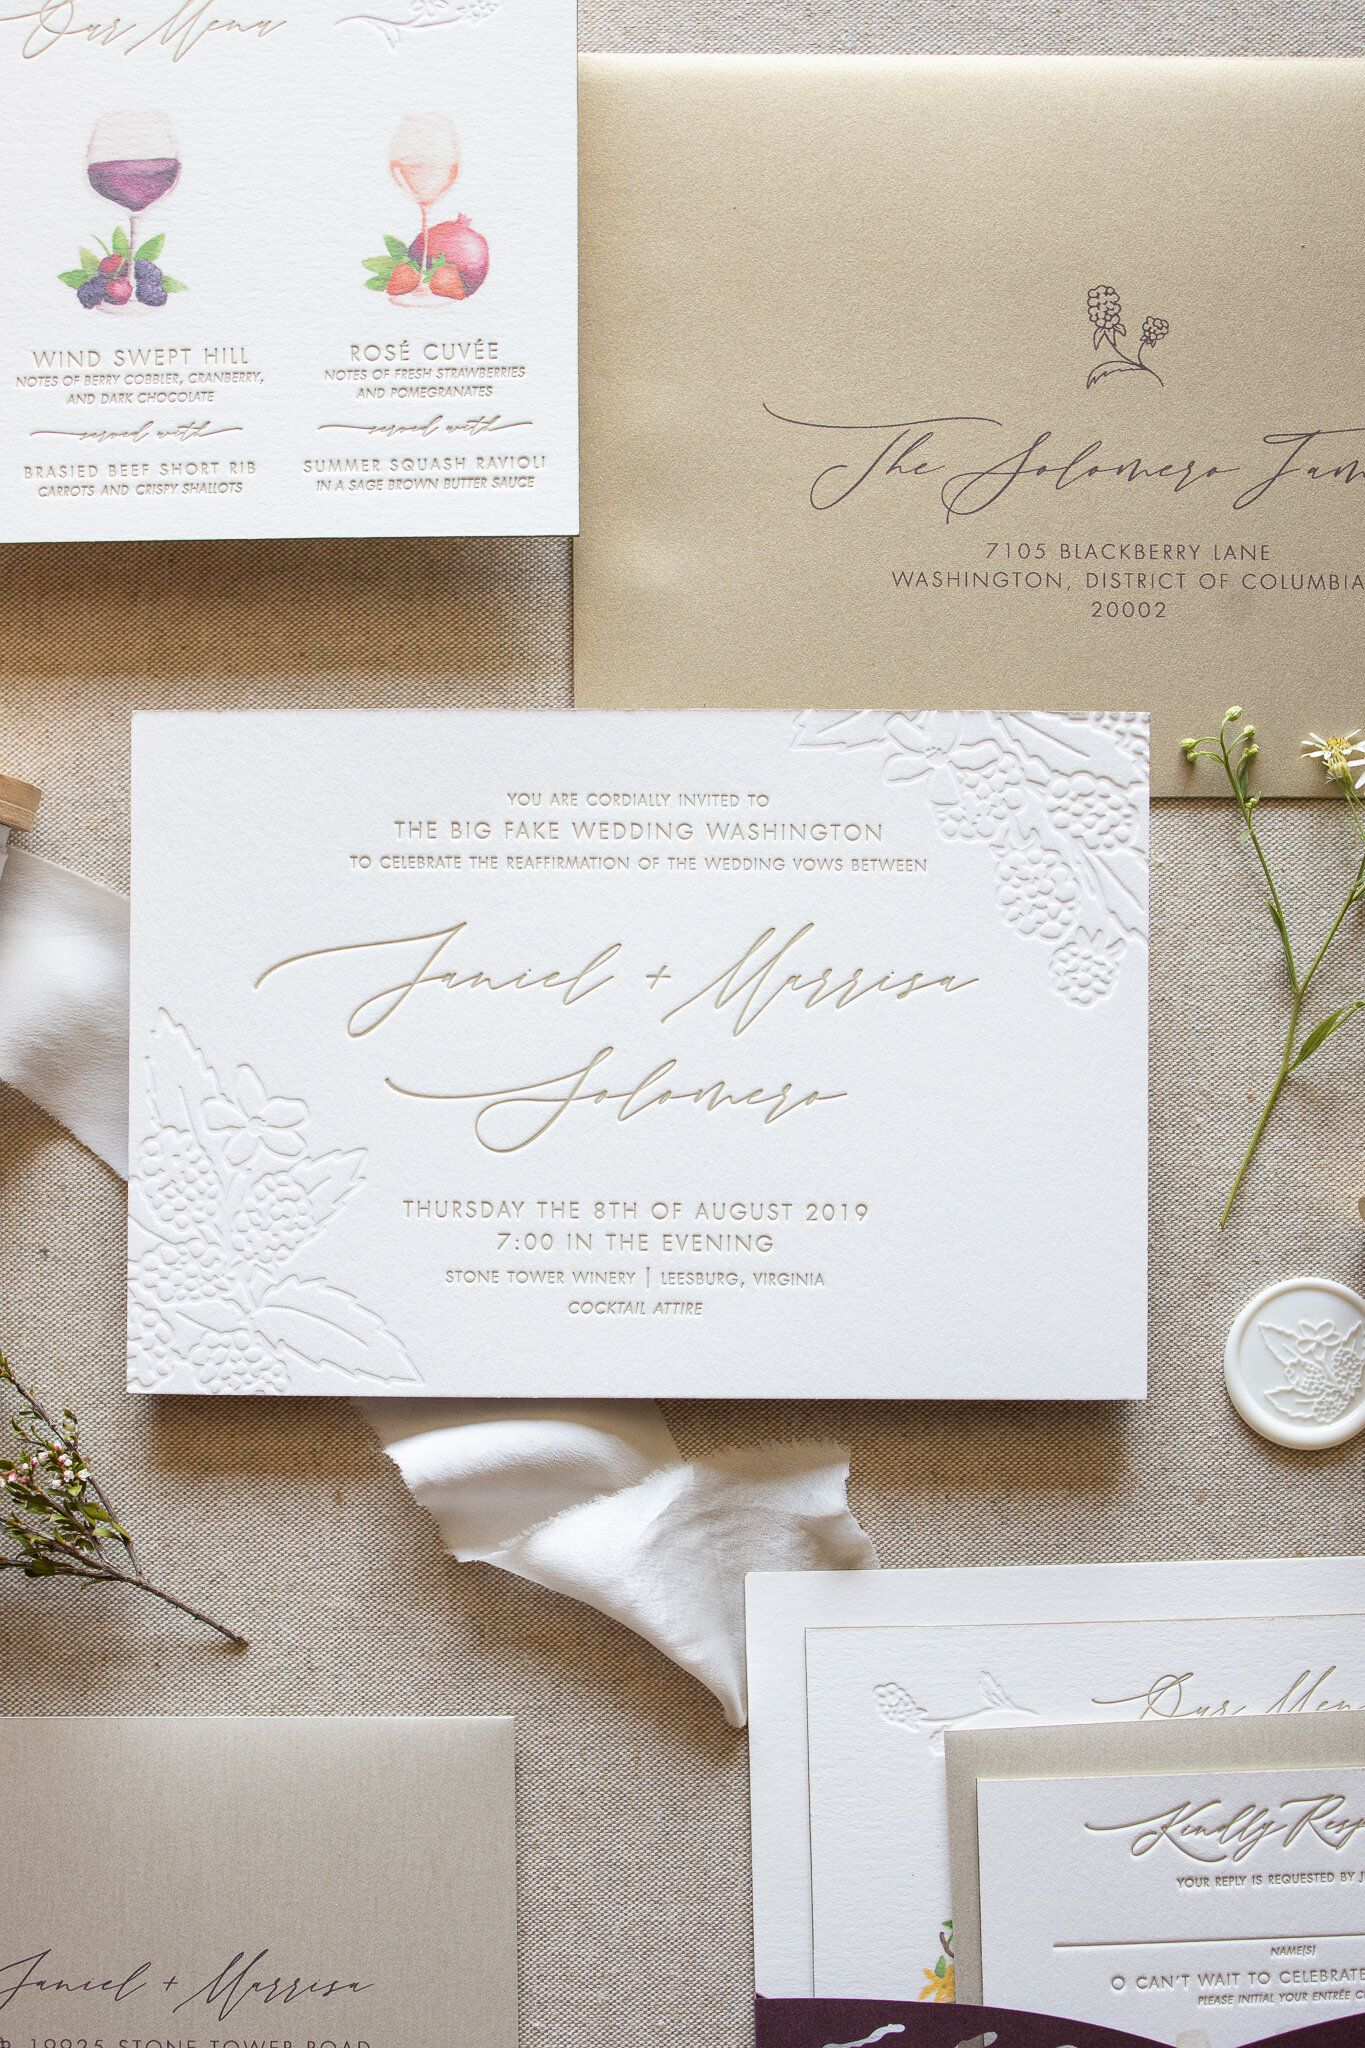 Type A S Guide To Printing Methods Type A Invitations Branding Embossed Wedding Invitations Printable Wedding Invitations Vintage Printing Wedding Invitations